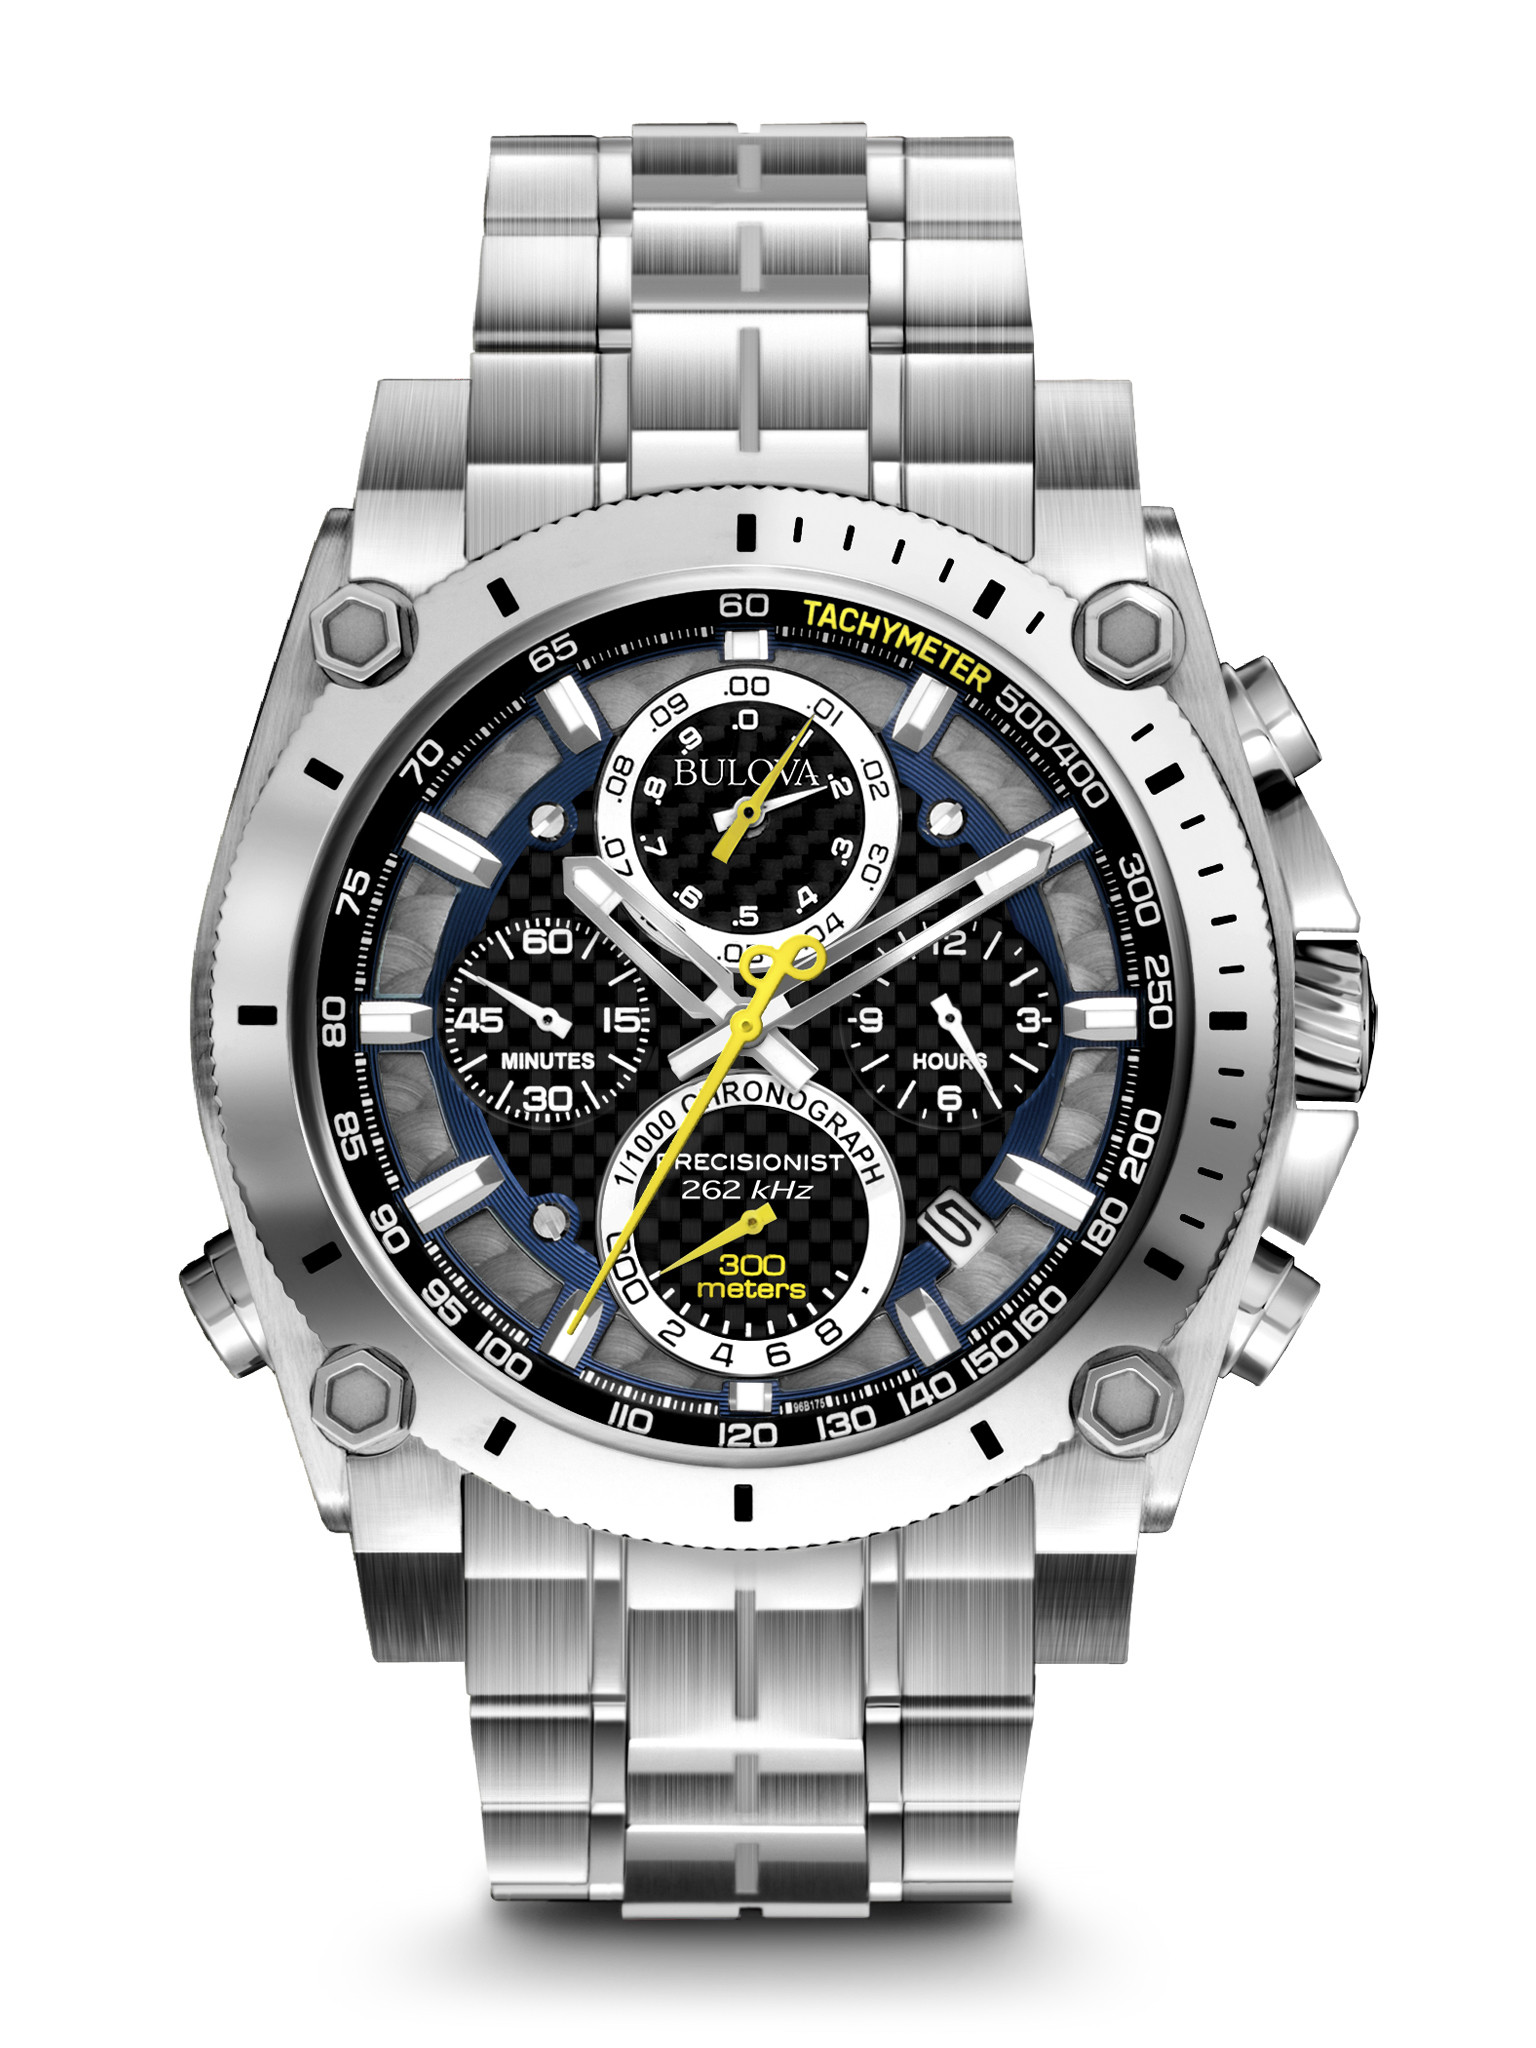 Bulova Precisionist Chronograph Watch Review (96B175)